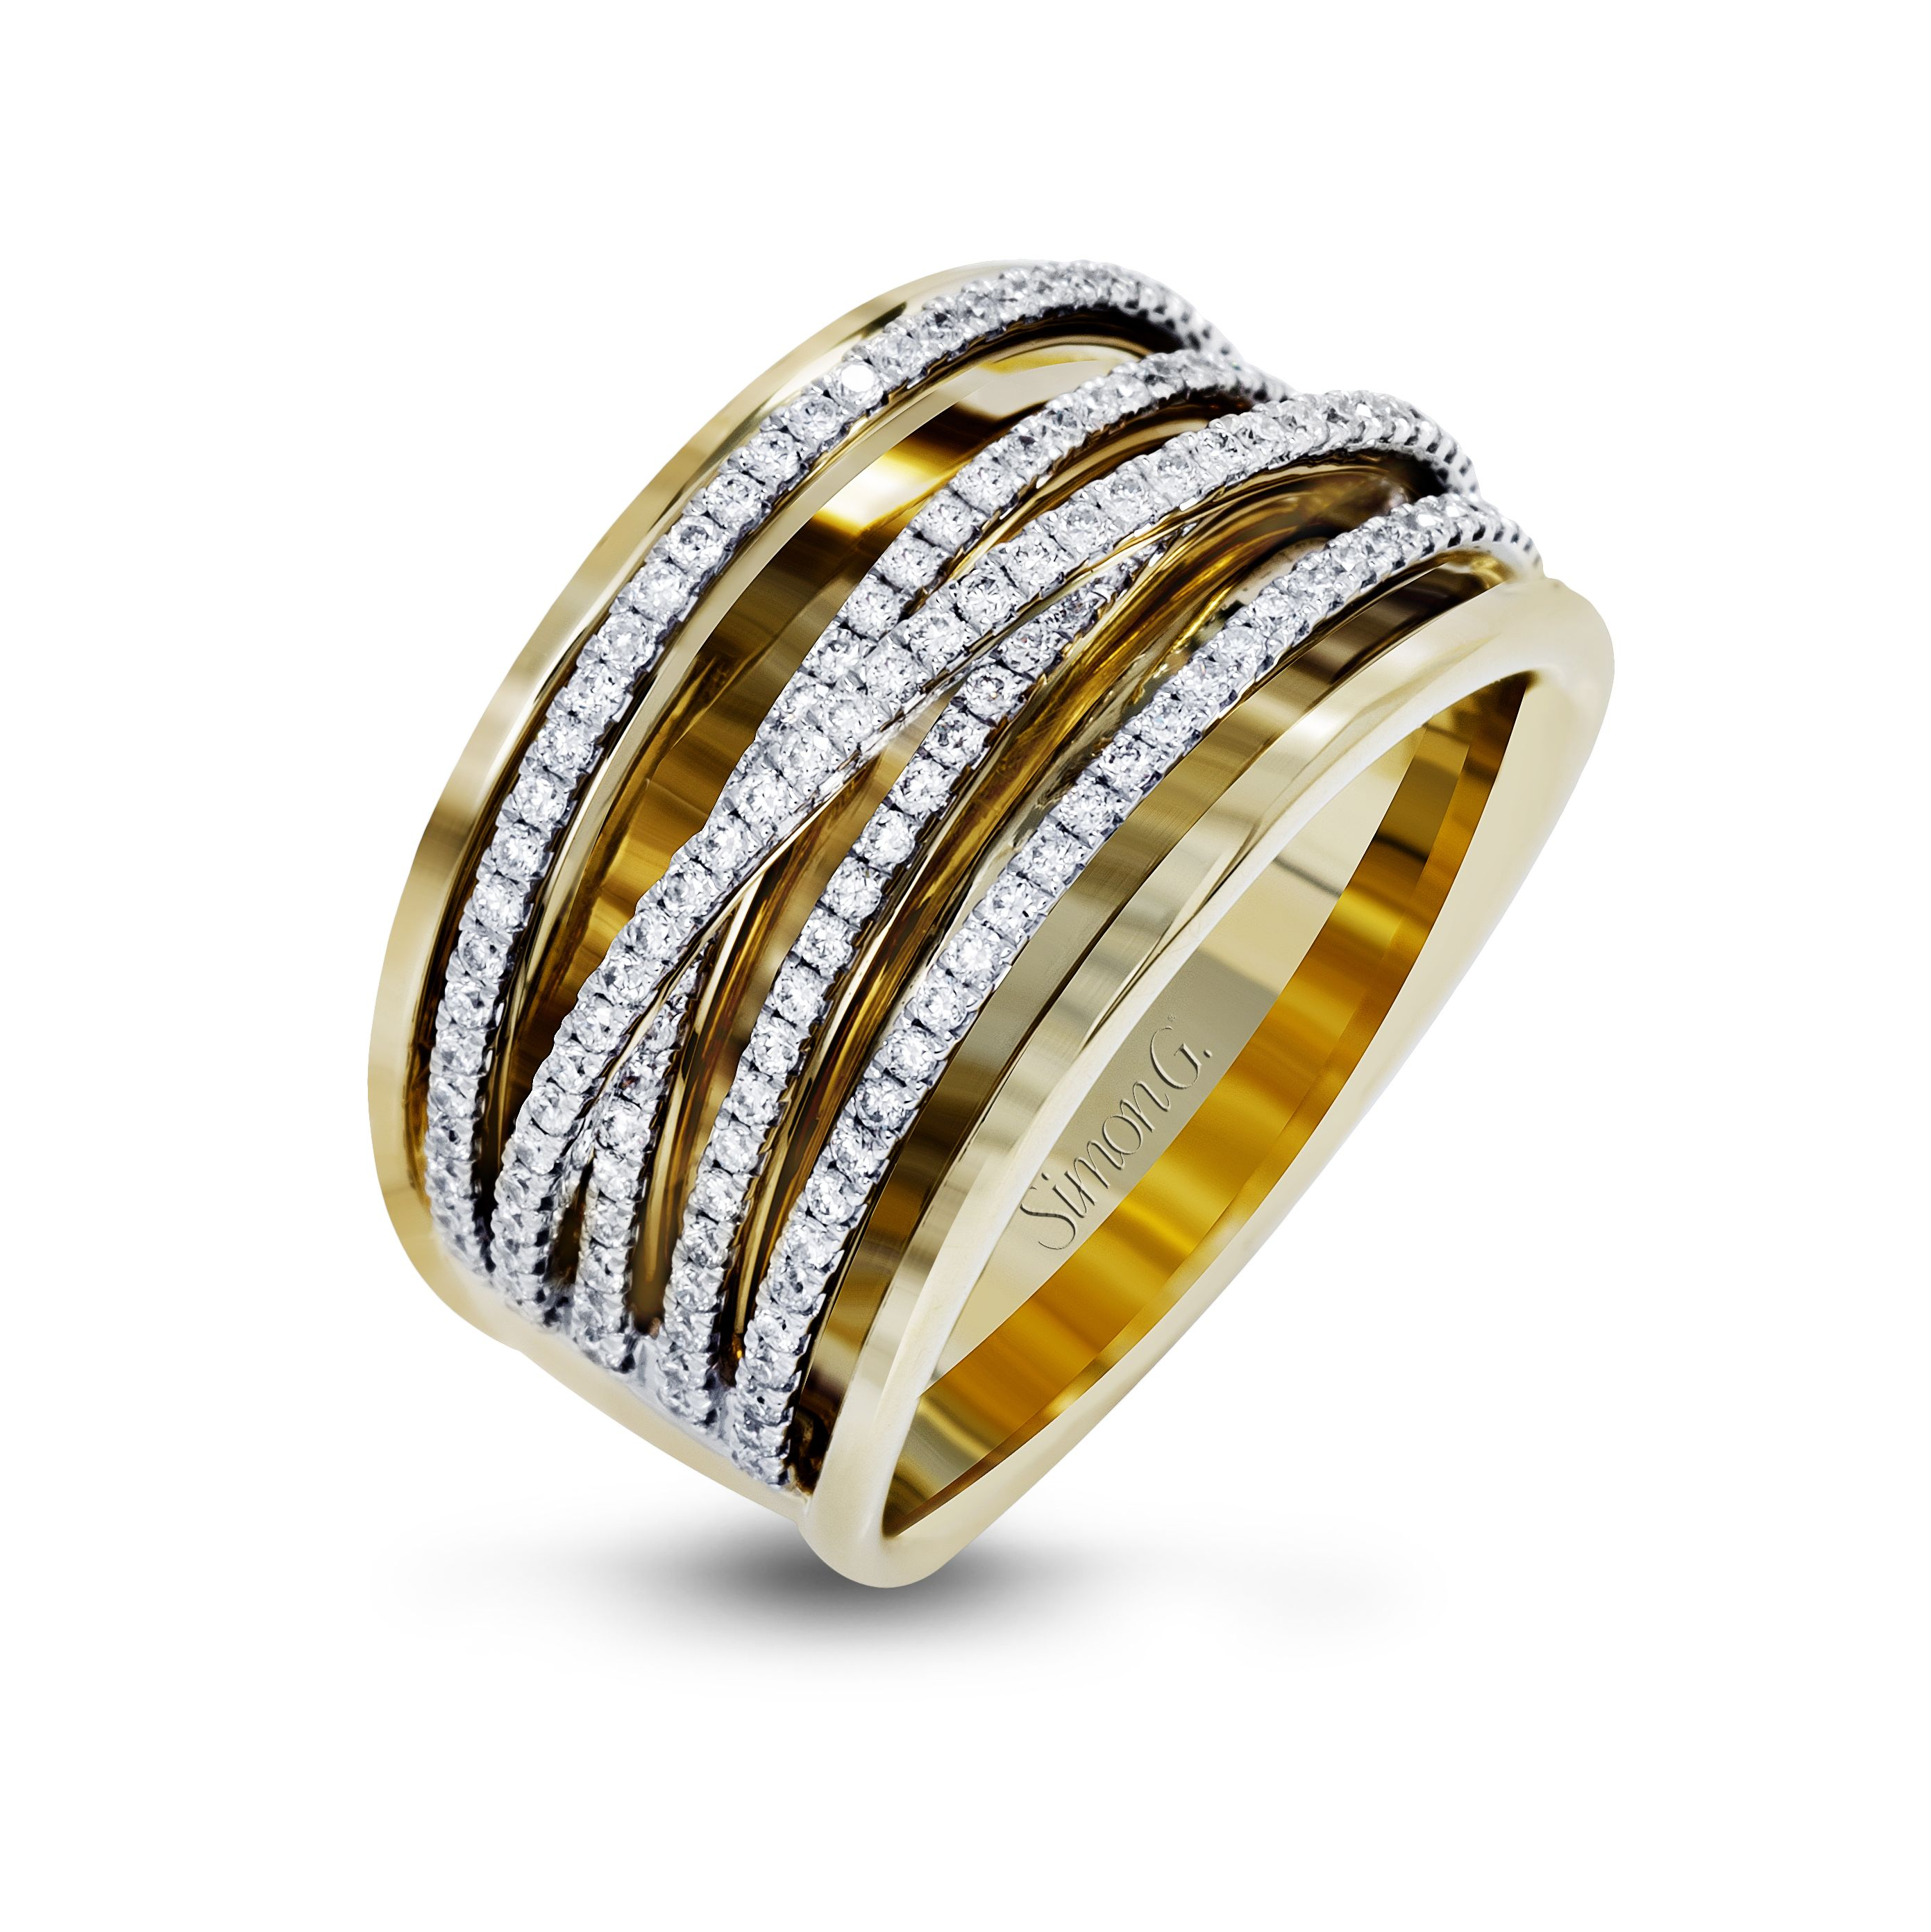 Style MR2664 18kt Yellow Gold Fashion Ring with Criss